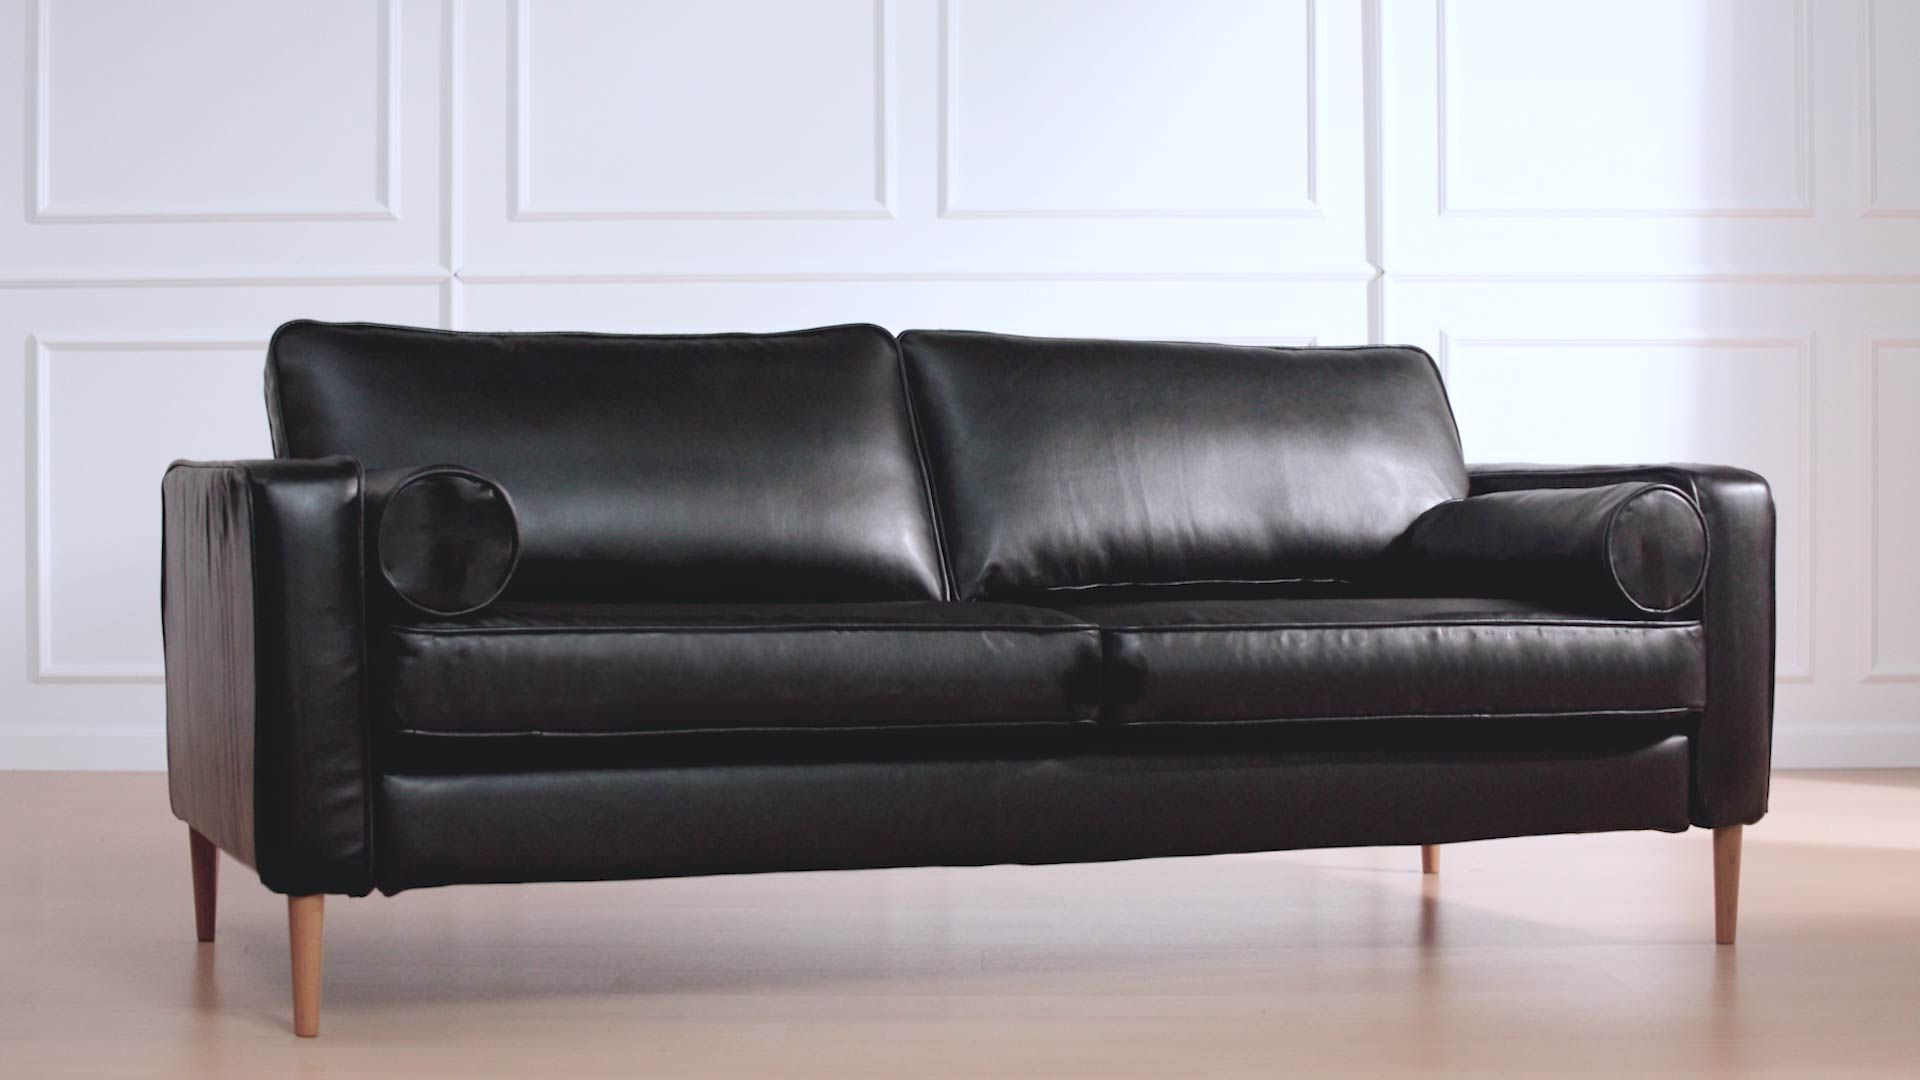 Matte Black Leather Slipcovers For Any Sofa Black Leather Couch Leather Sofa Covers Leather Couch Covers